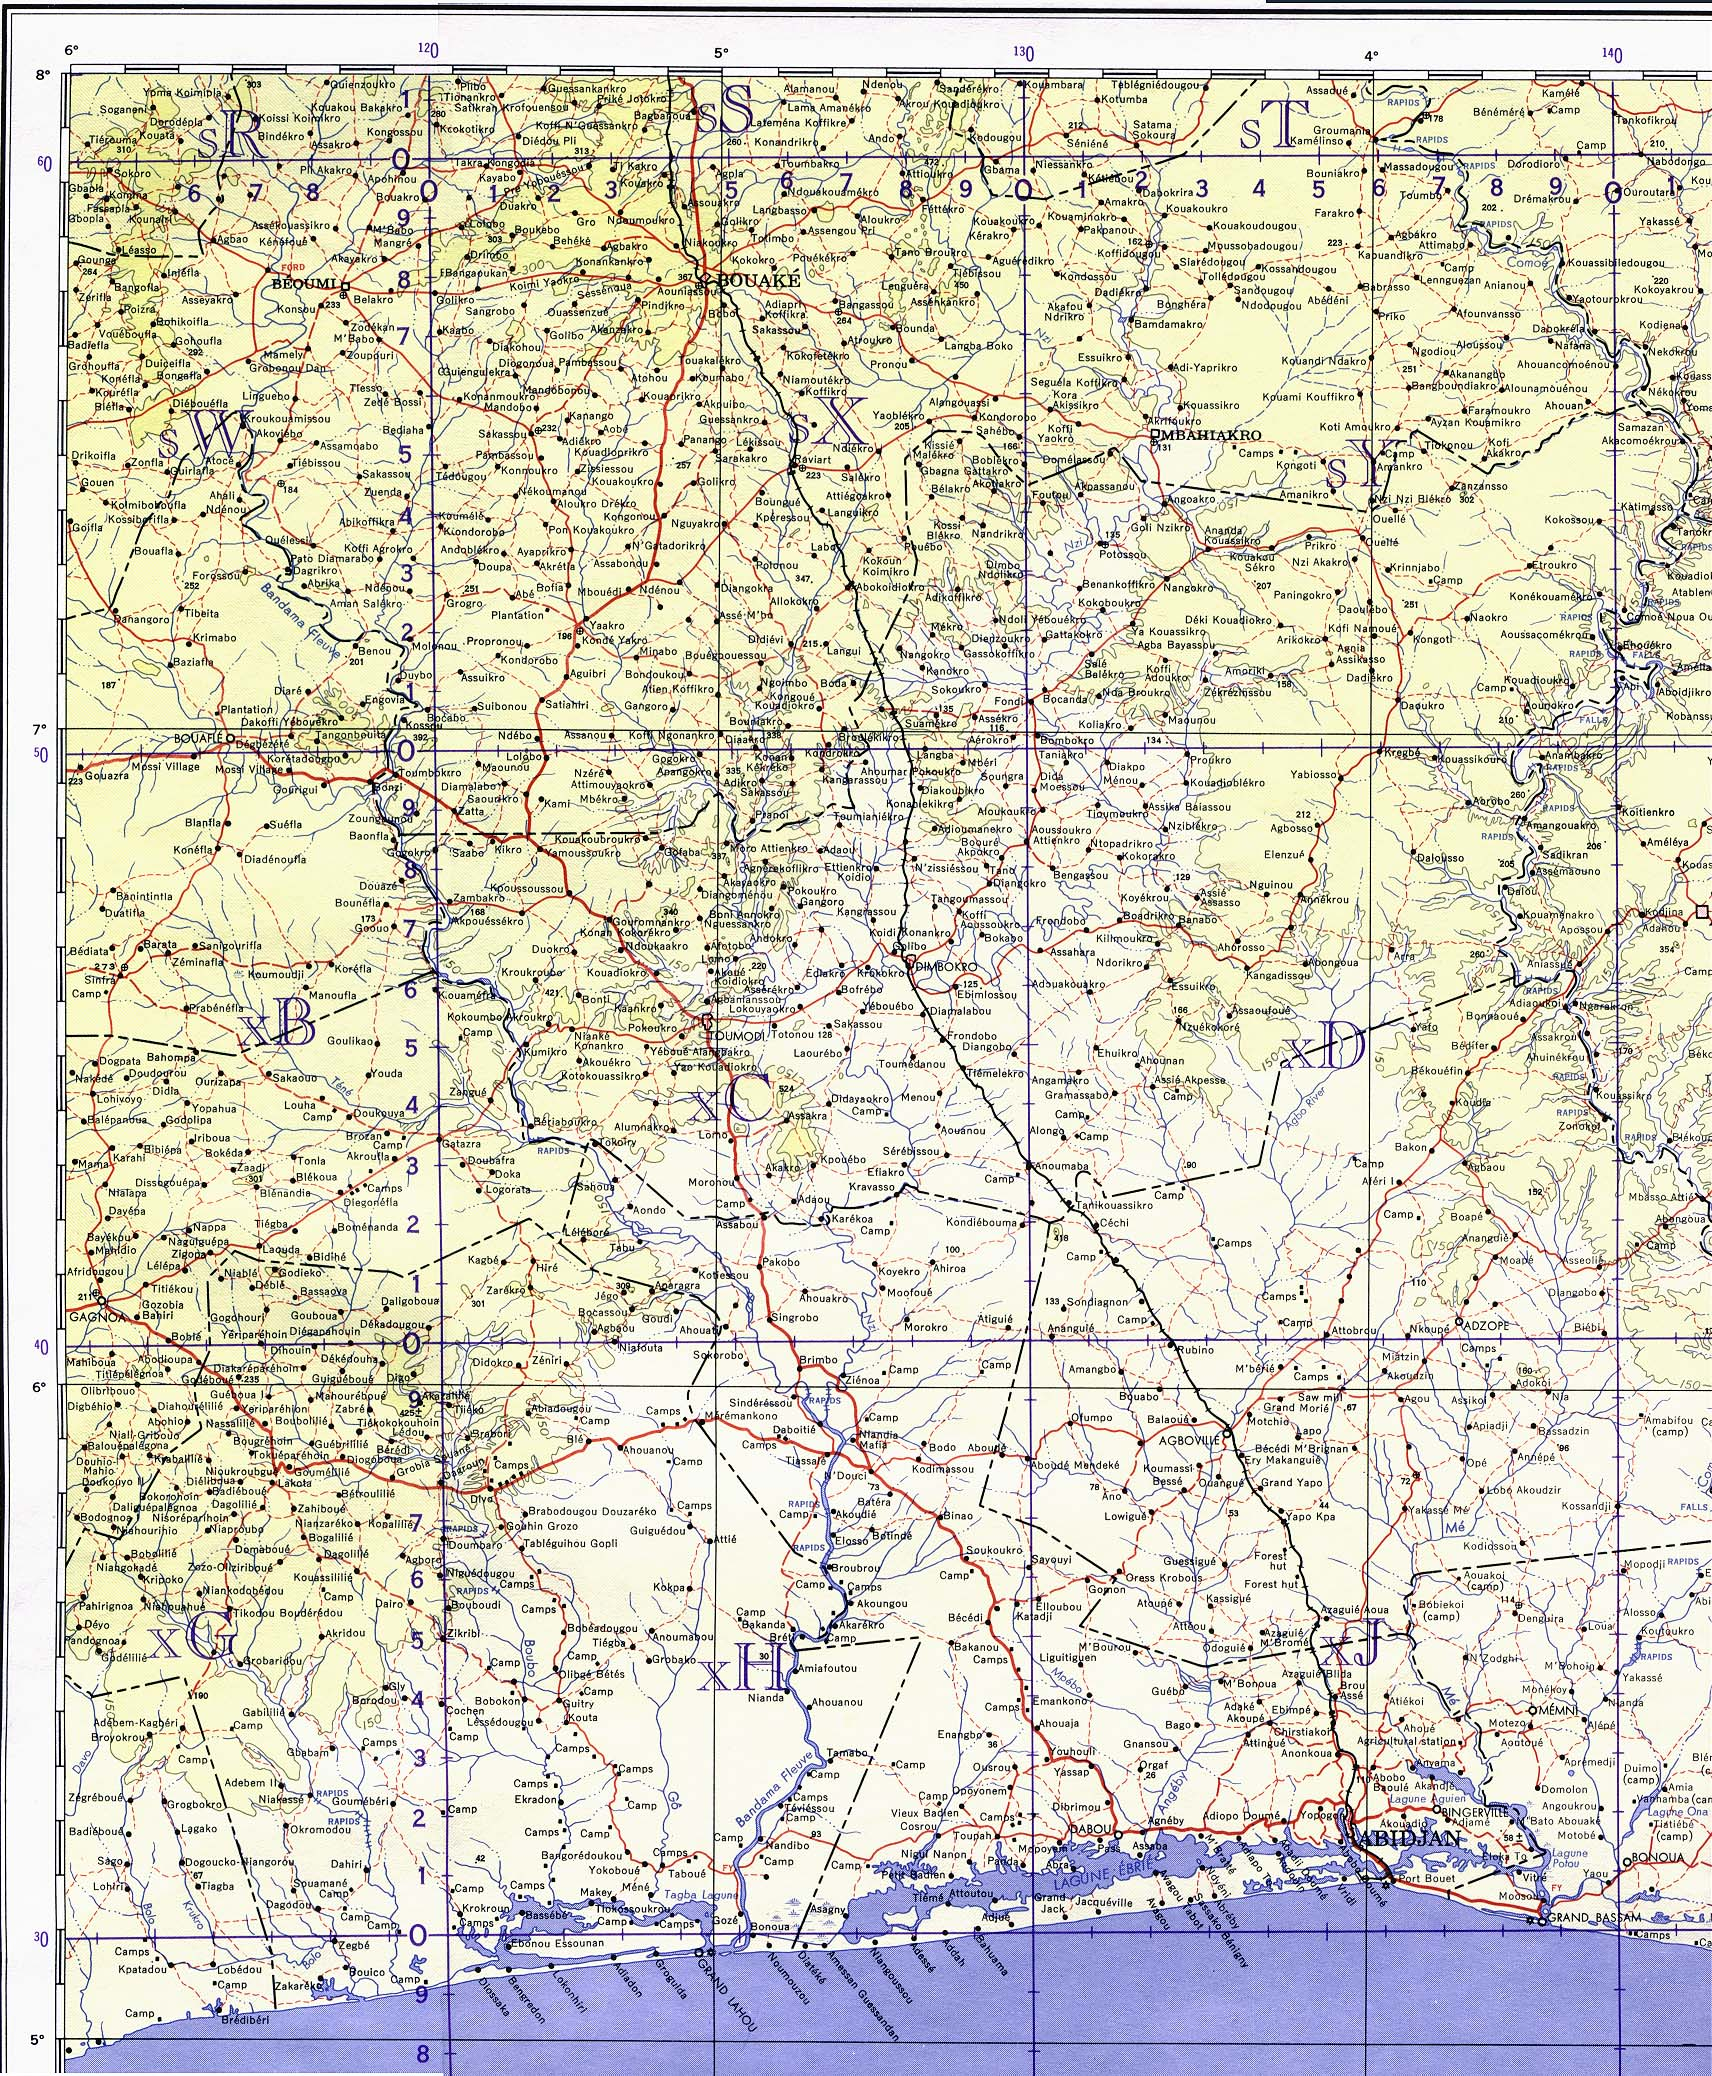 Cote DIvoire Ivory Coast Maps PerryCastañeda Map Collection - Images map sheets of us